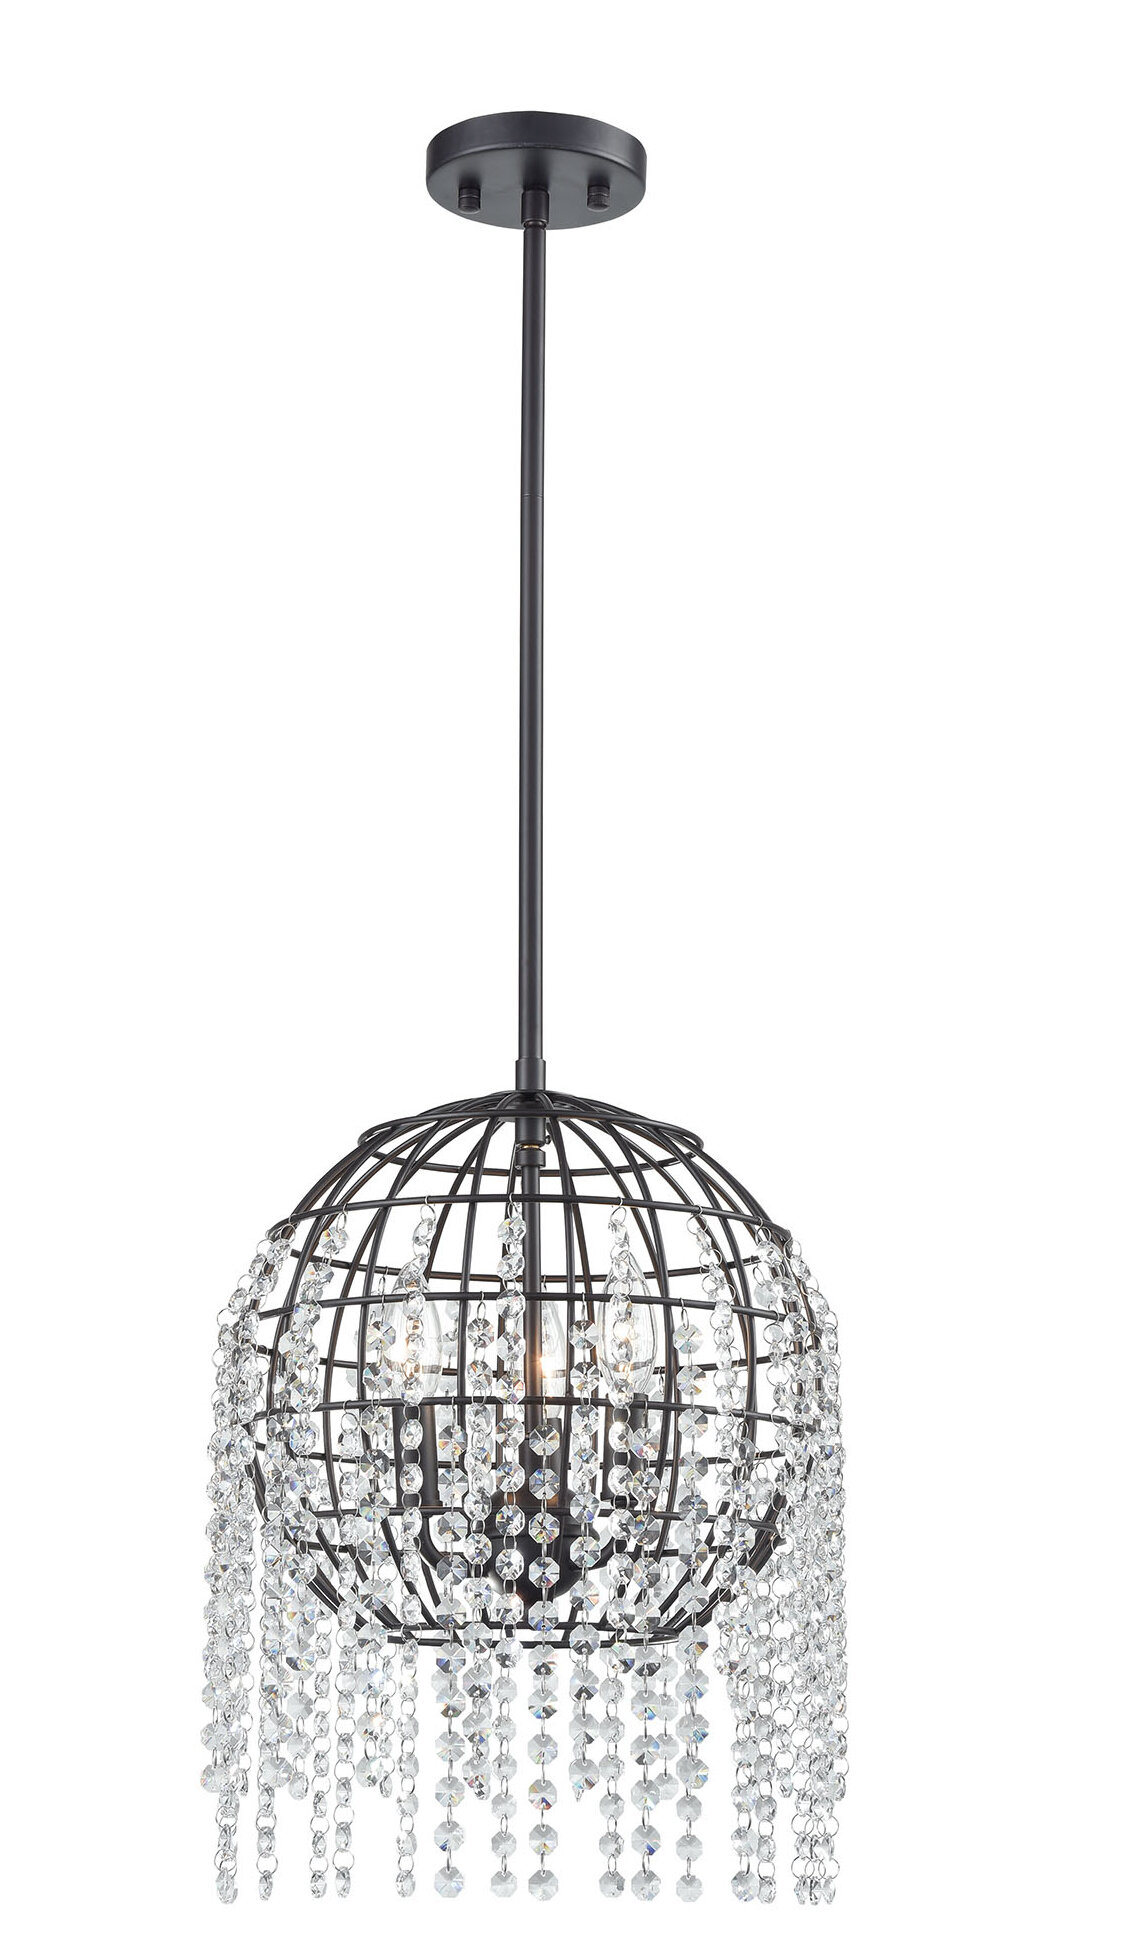 Laurel Foundry Modern Farmhouse Dublin 3 Light Unique Statement Chandelier Wayfair